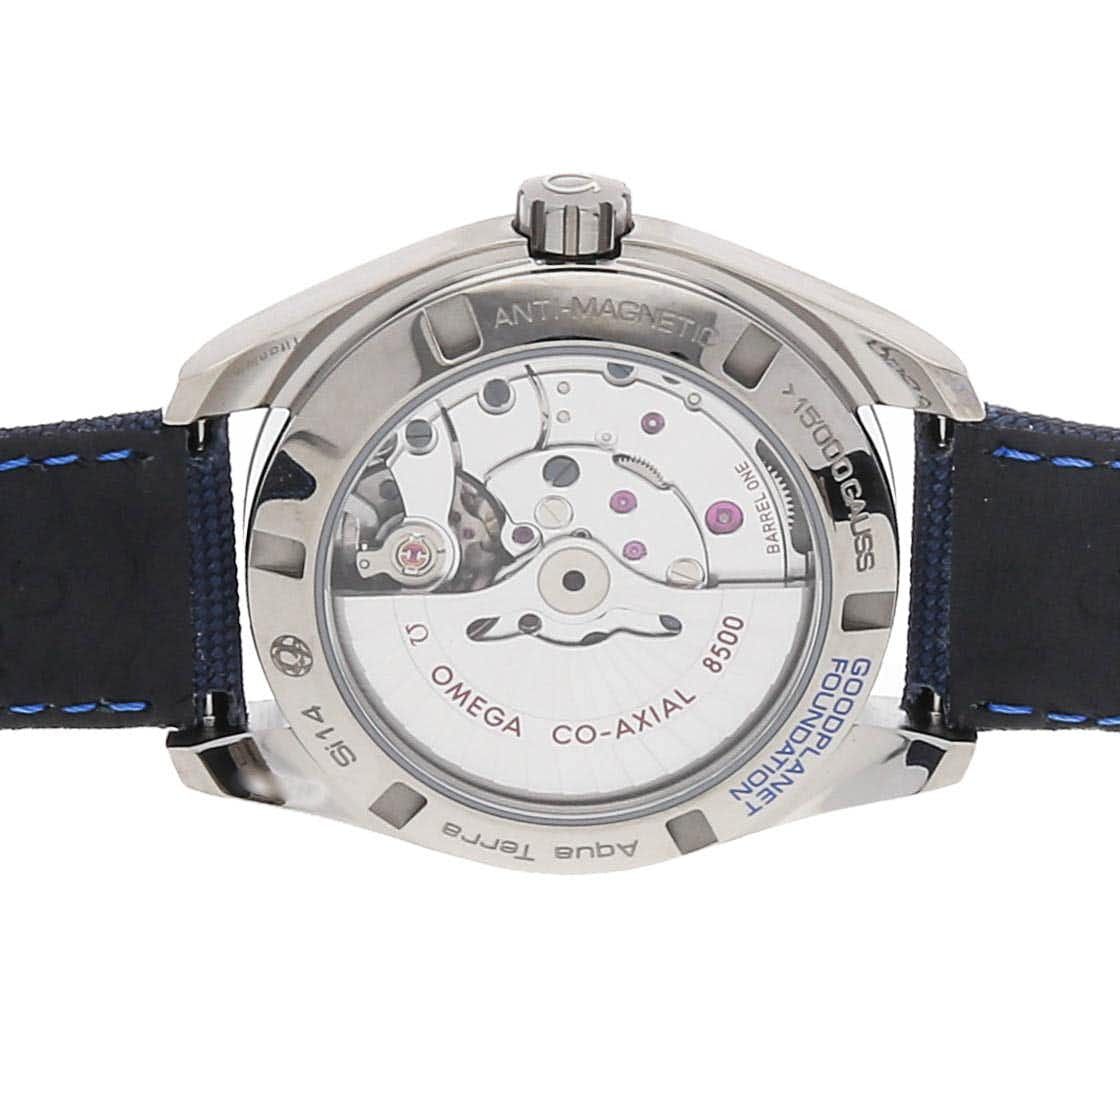 Omega Seamaster Aqua Terra 150m GMT Good Planet 231.92.39.21.04.001